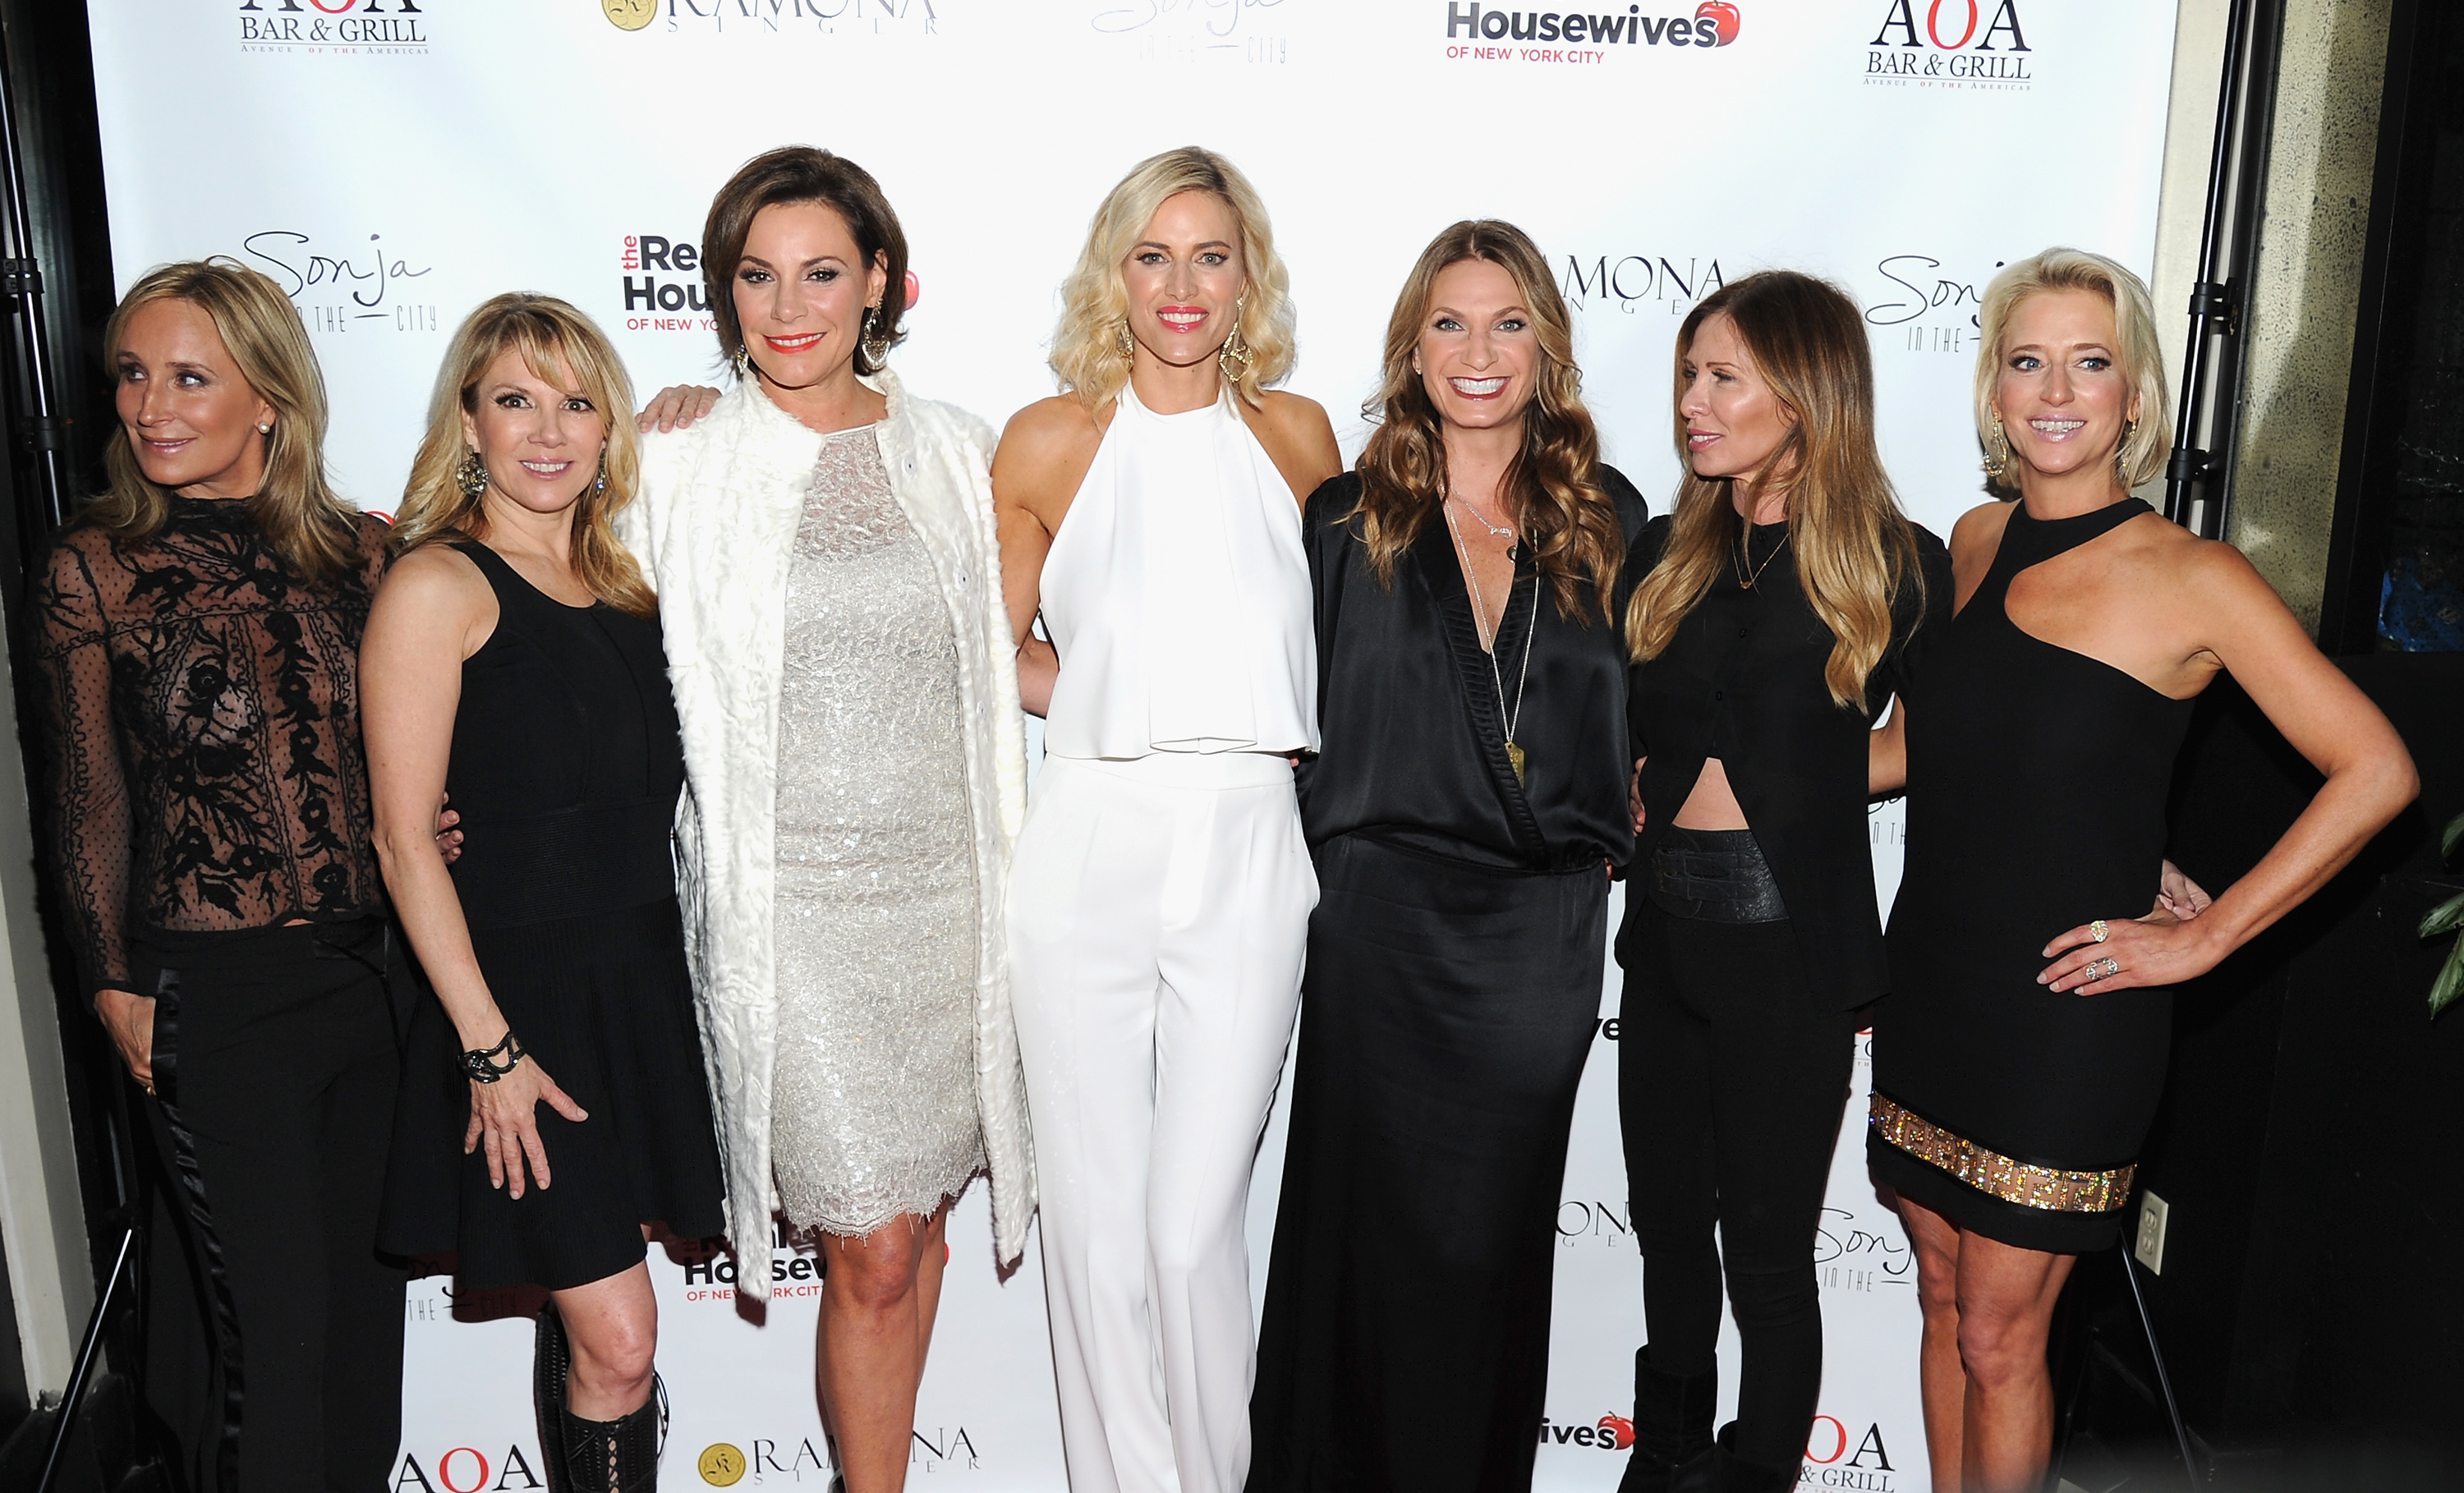 "(L-R) Sonja Morgan, Ramona Singer, Luann De Lesseps, Kristen Taekman, Heather Thomson, Carole Radziwill and Dorinda Medley attend the ""Real Housewives of New York City"" season 7 series viewing party at AOA Bar & Grill on April 7, 2015 in New York City.  Image  Andrew Toth/Getty Images"